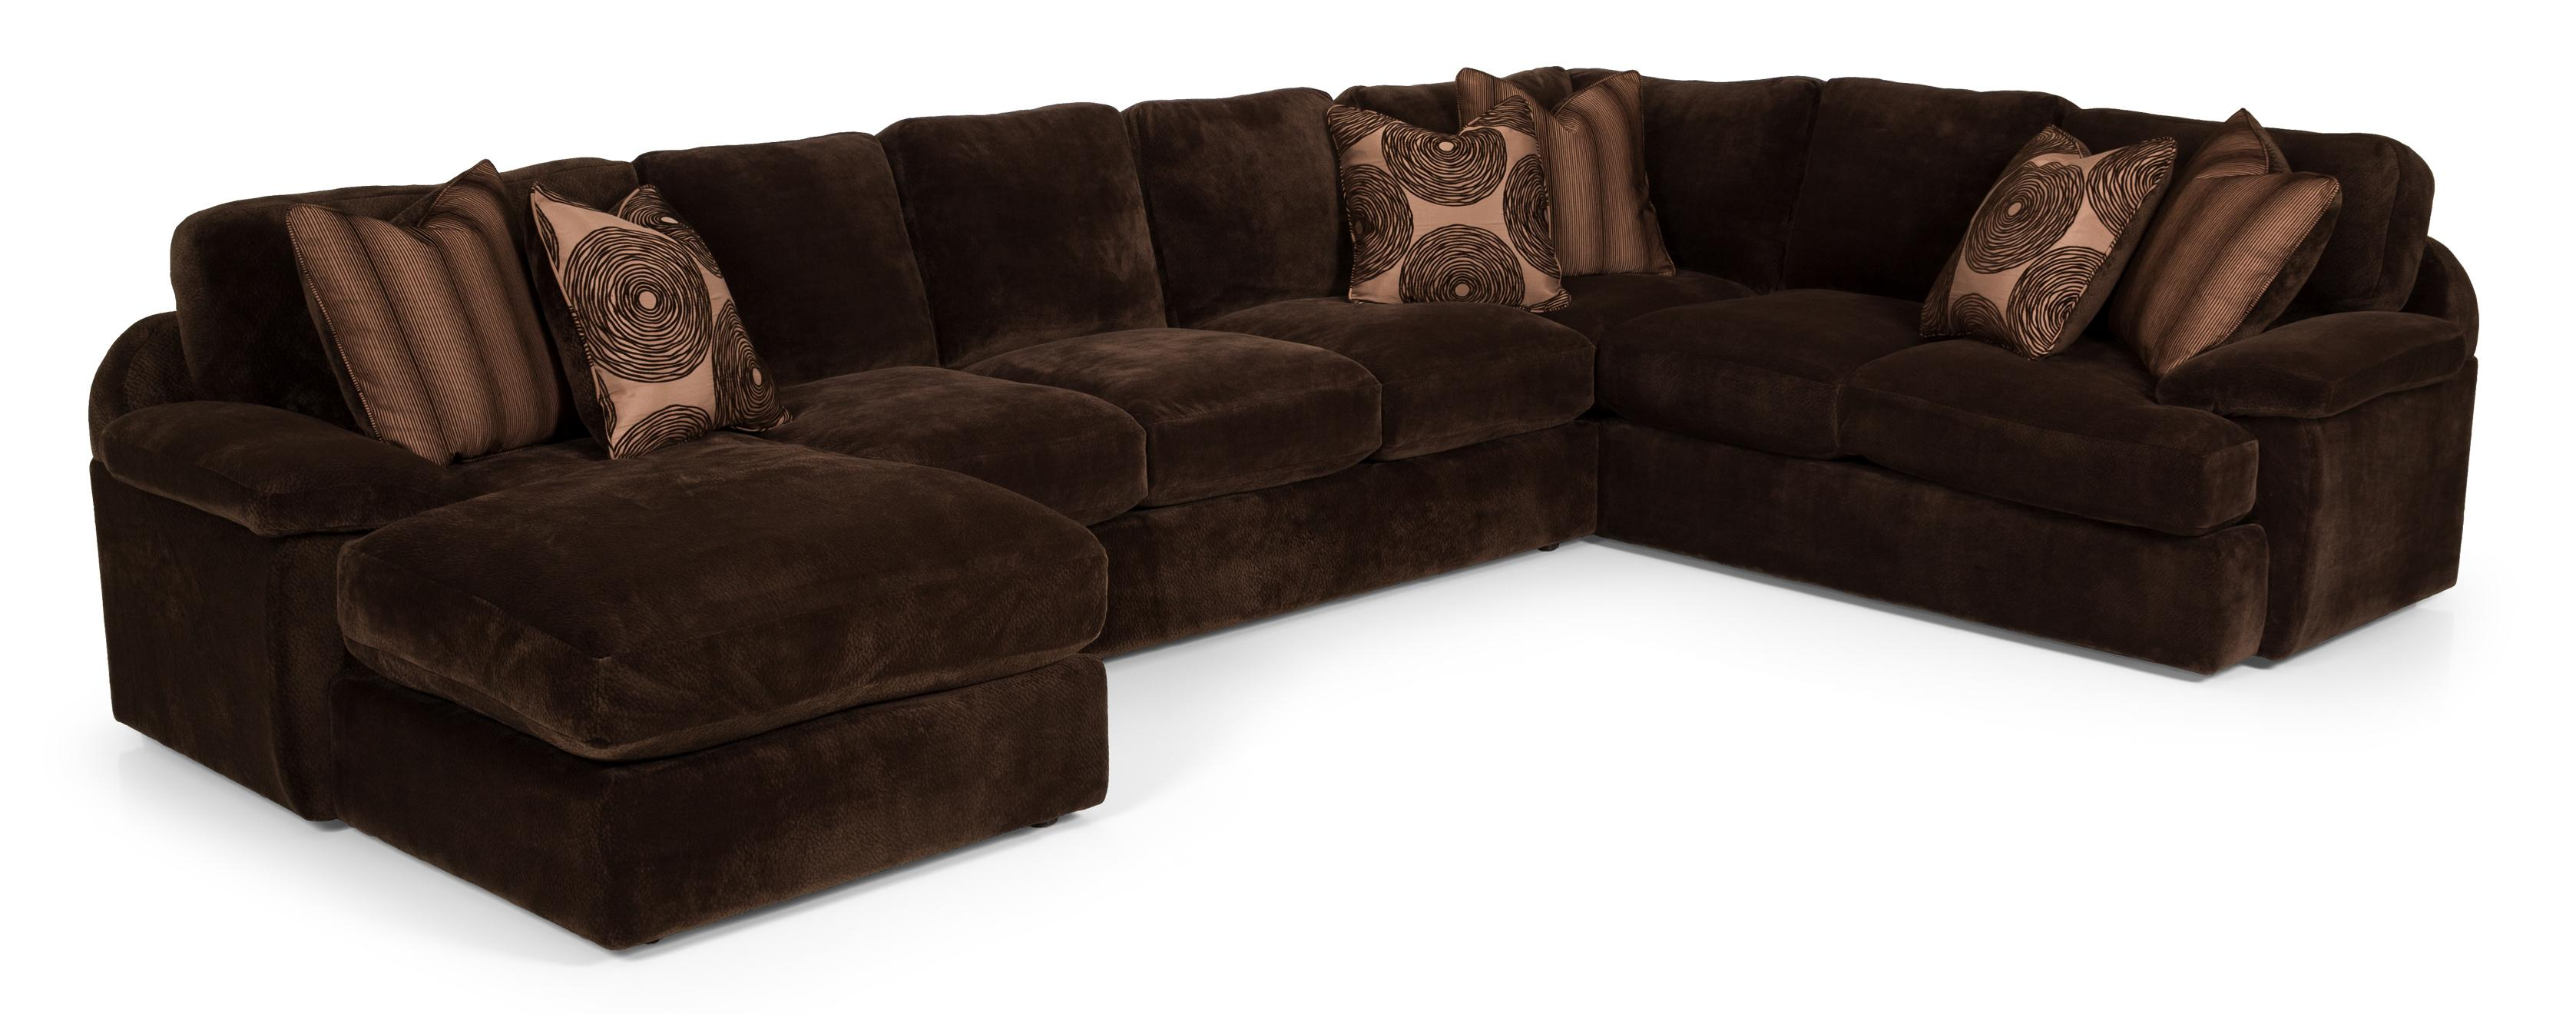 186 3 Pc Sectional Sofa w/ RAF Chaise by Stanton at Wilson's Furniture